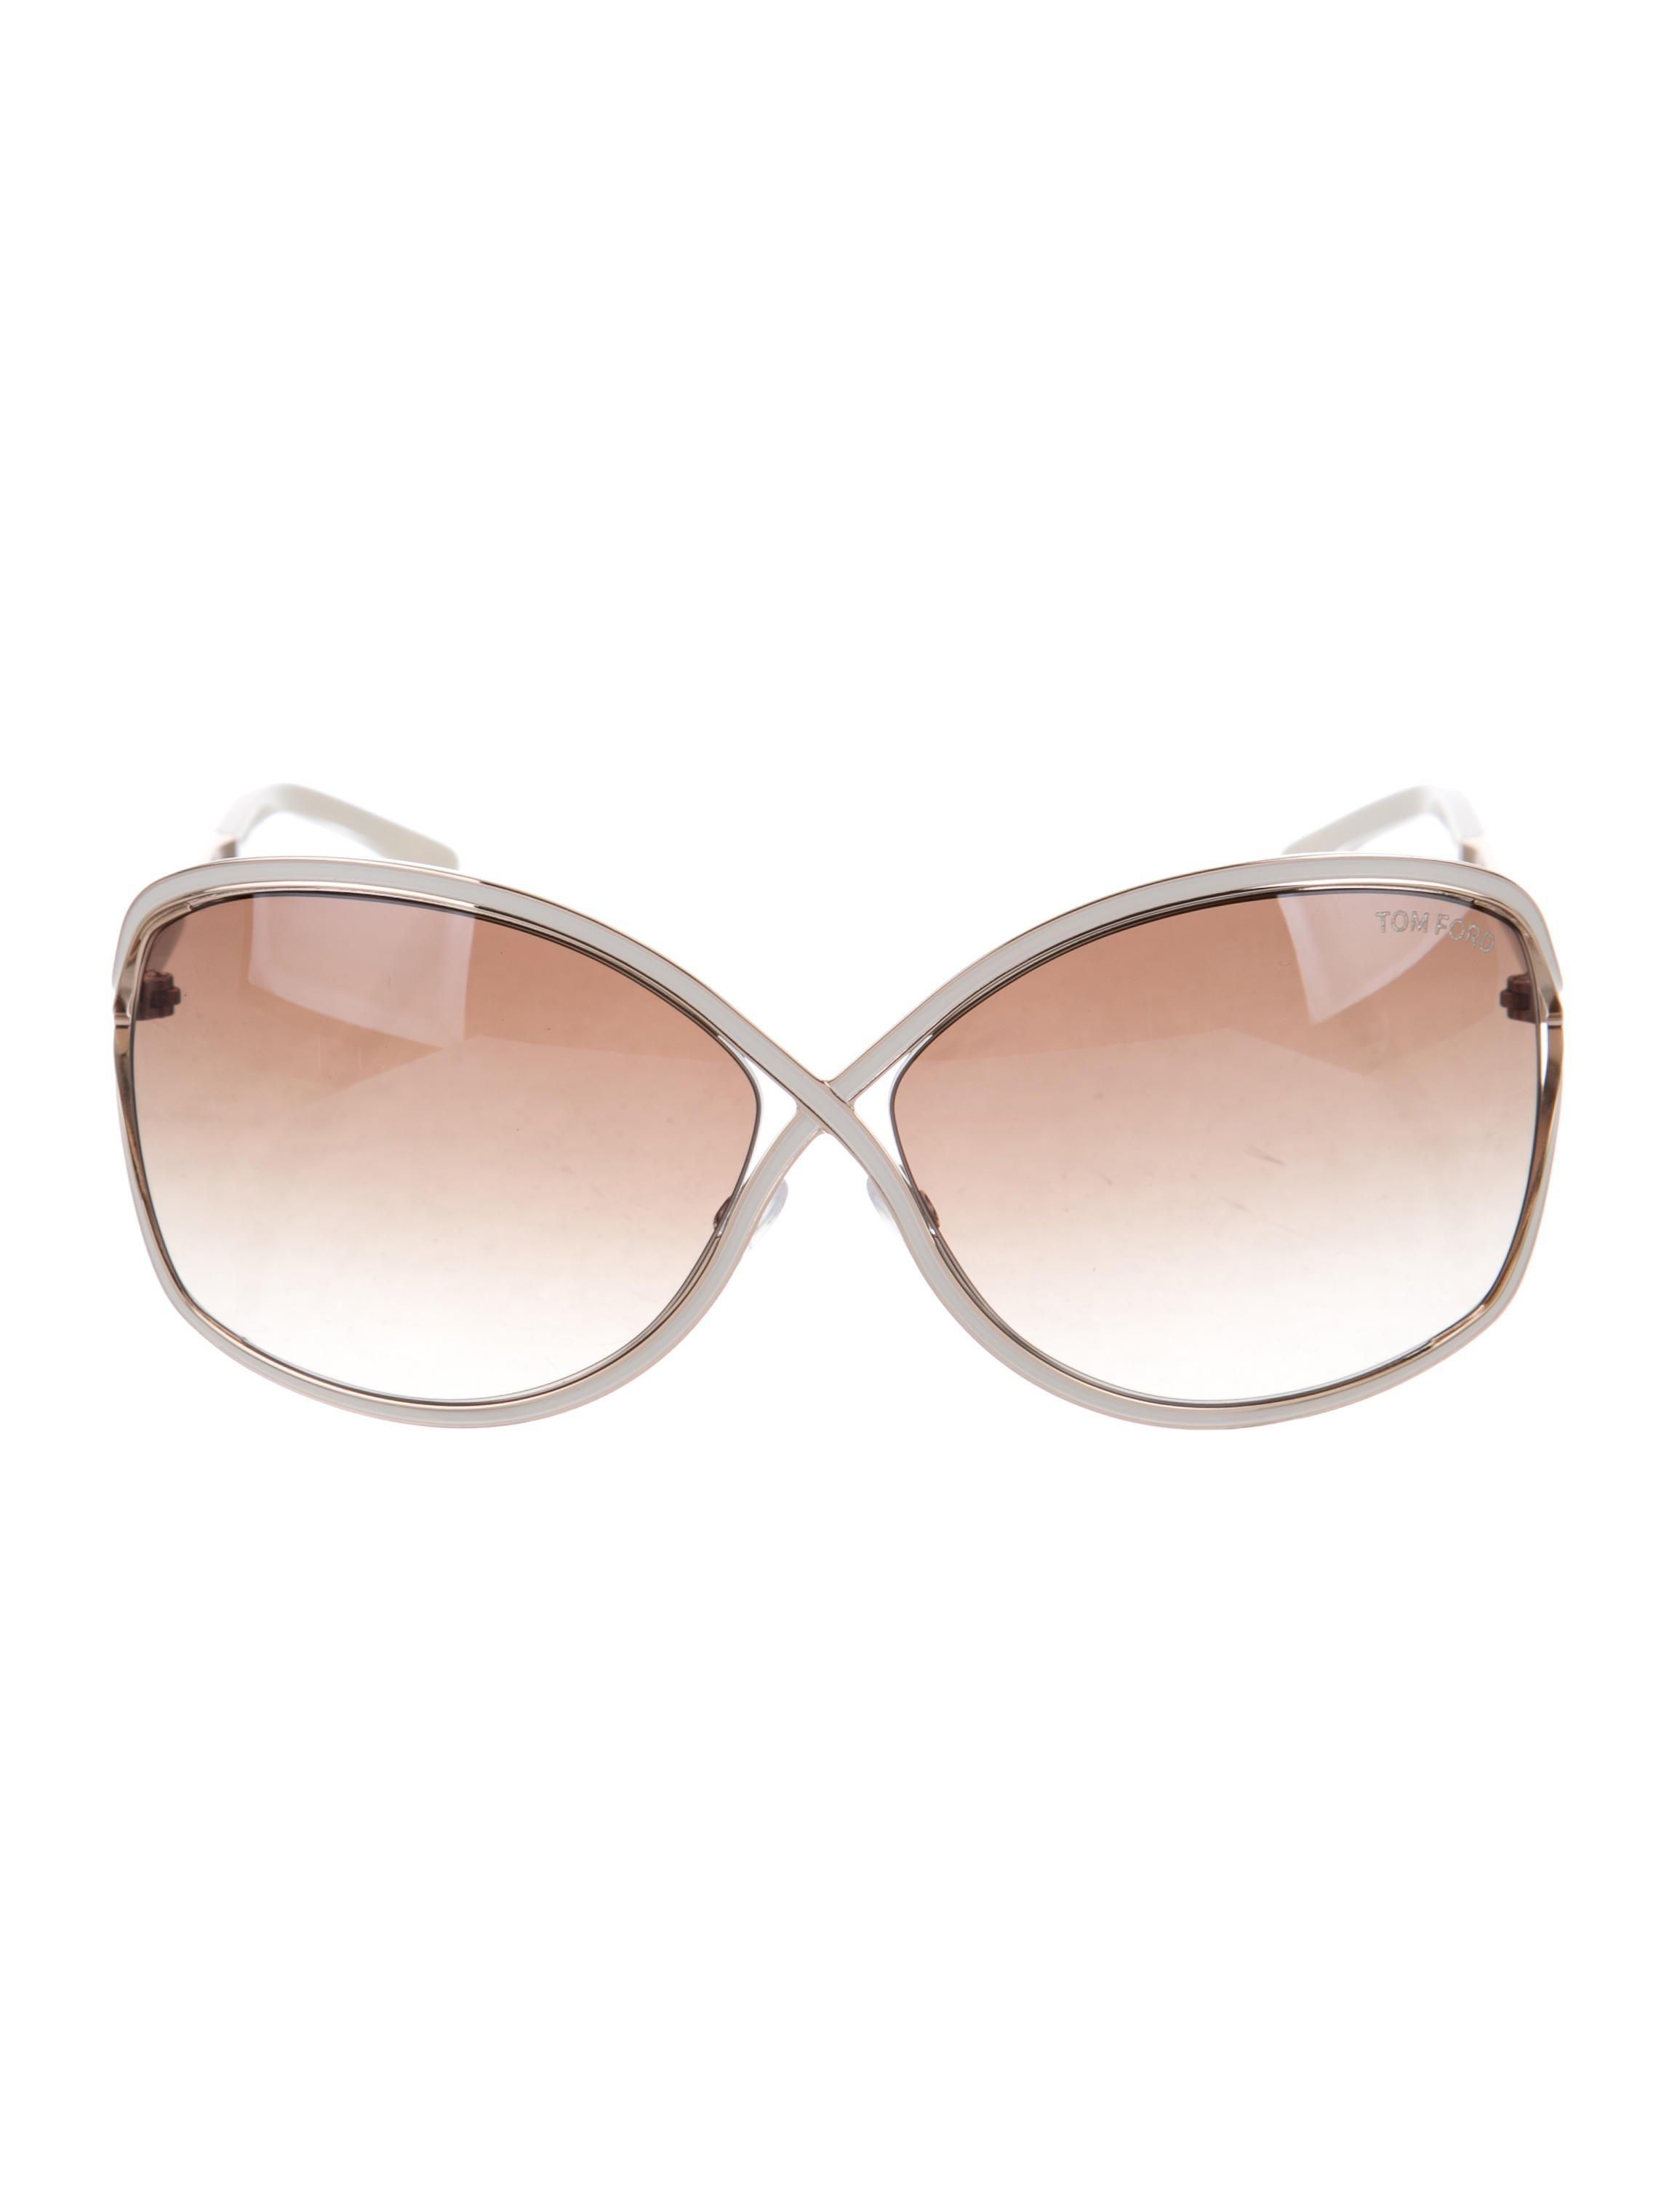 74605f536f5e5 Lyst - Tom Ford Rickie Oversize Sunglasses Gold in Metallic